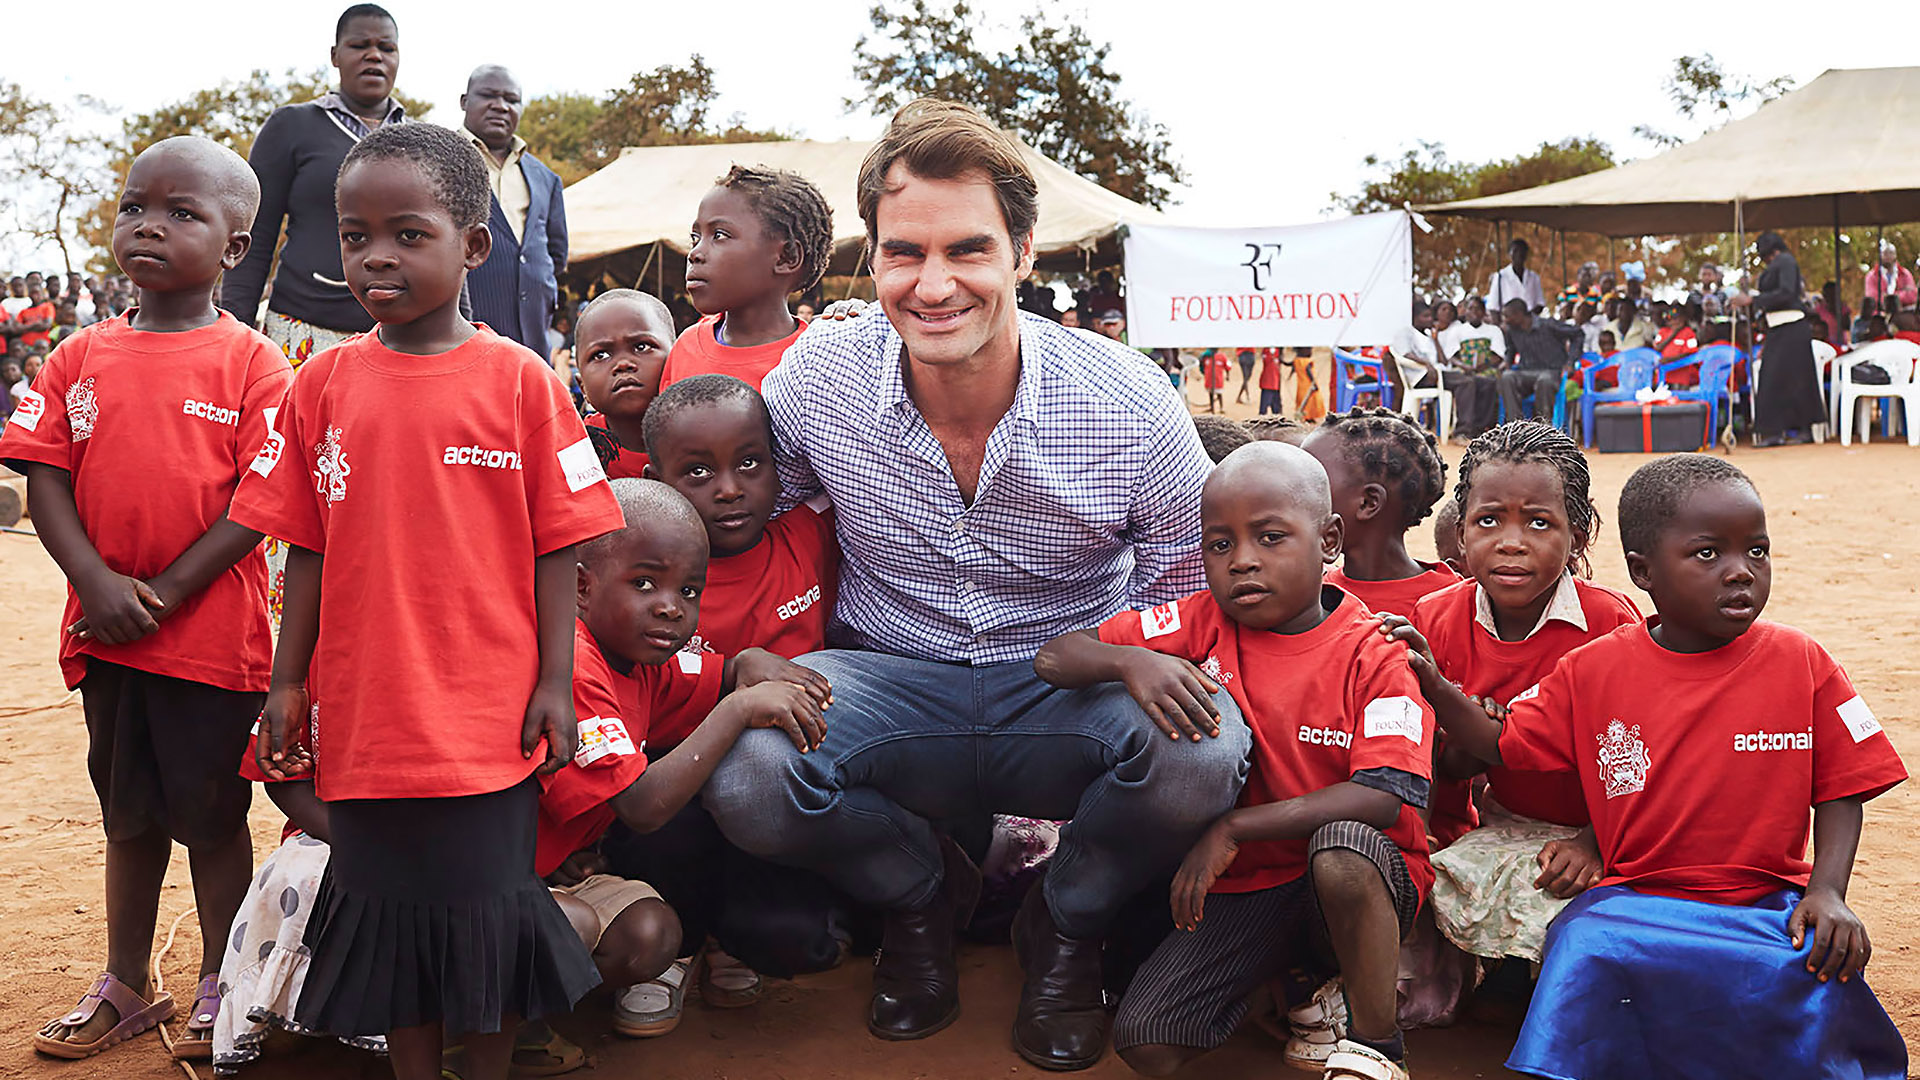 roger federer foundation with childrens cute sill hd desktop computer free background photos